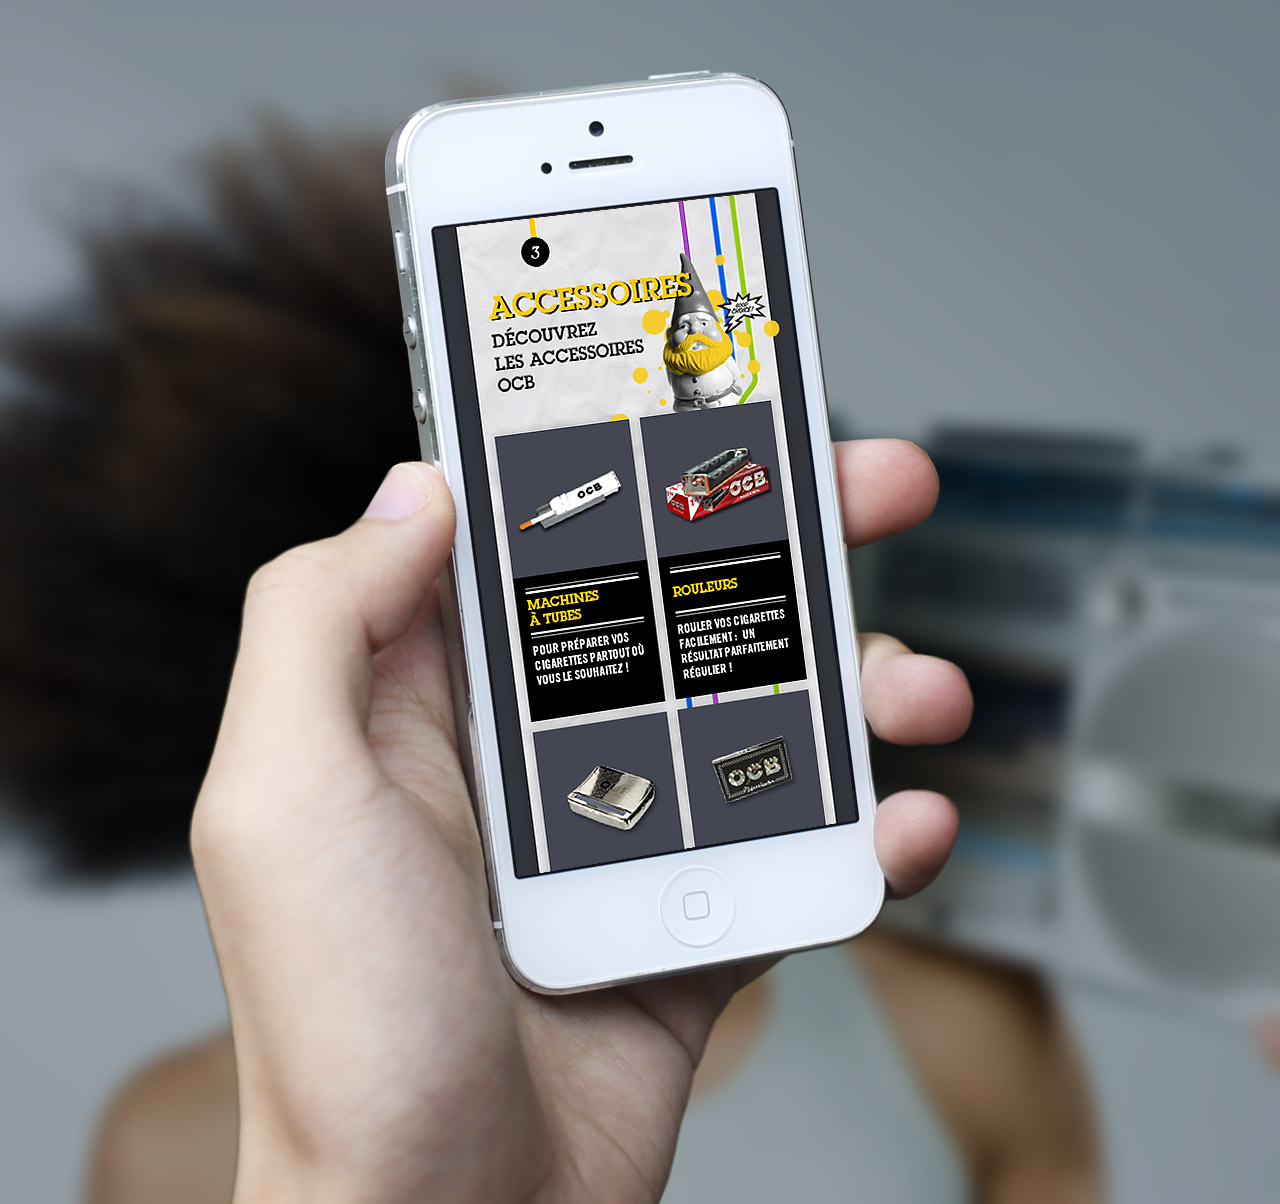 ocb-site-mobile-page-accessoires-creation-communication-caconcept-alexis-cretin-graphiste